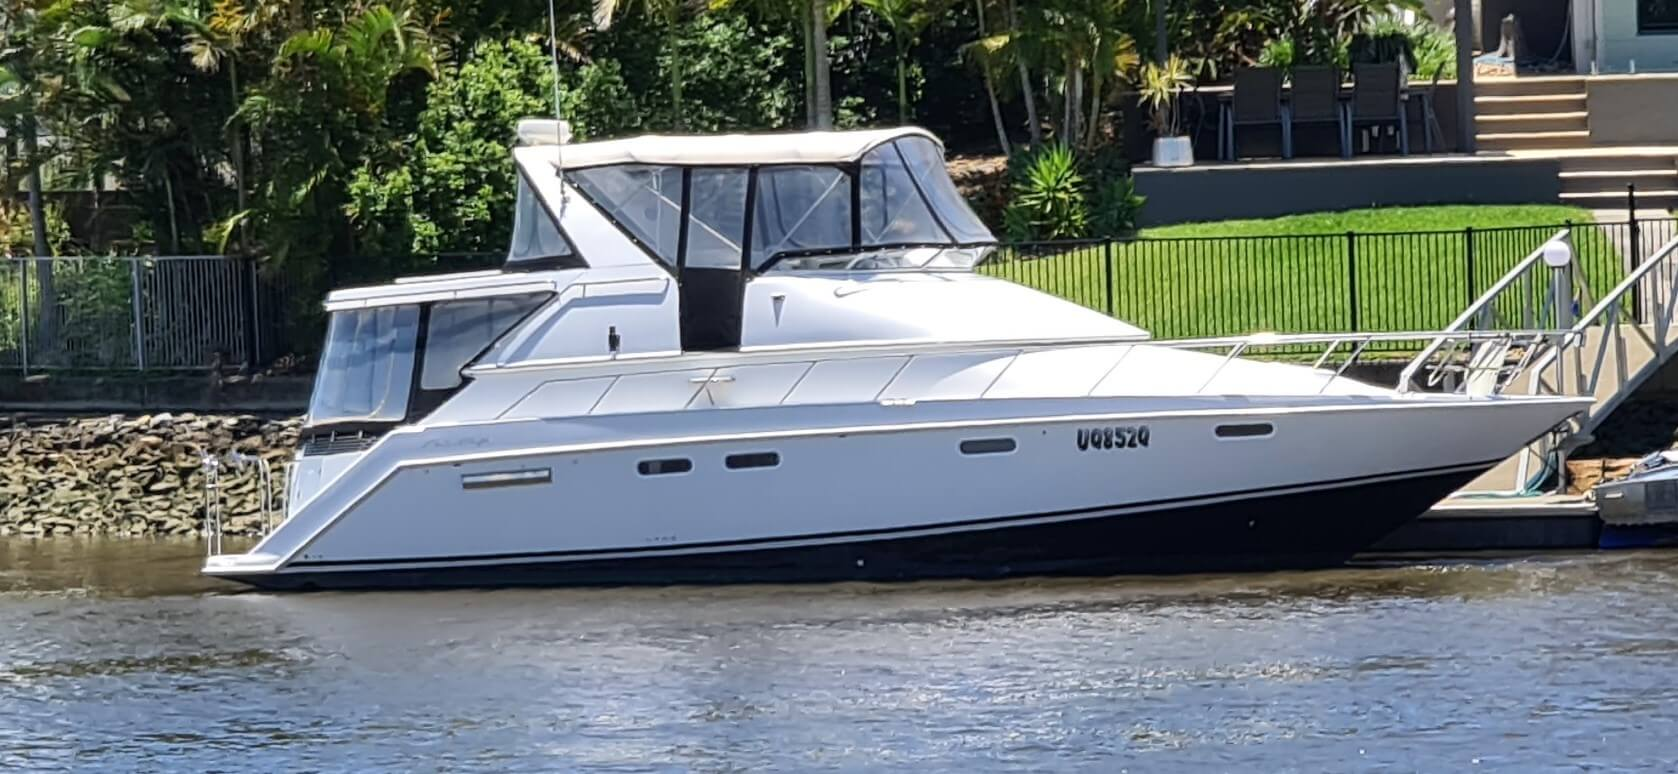 1994 Chris Craft 421 Continental Express Cruiser